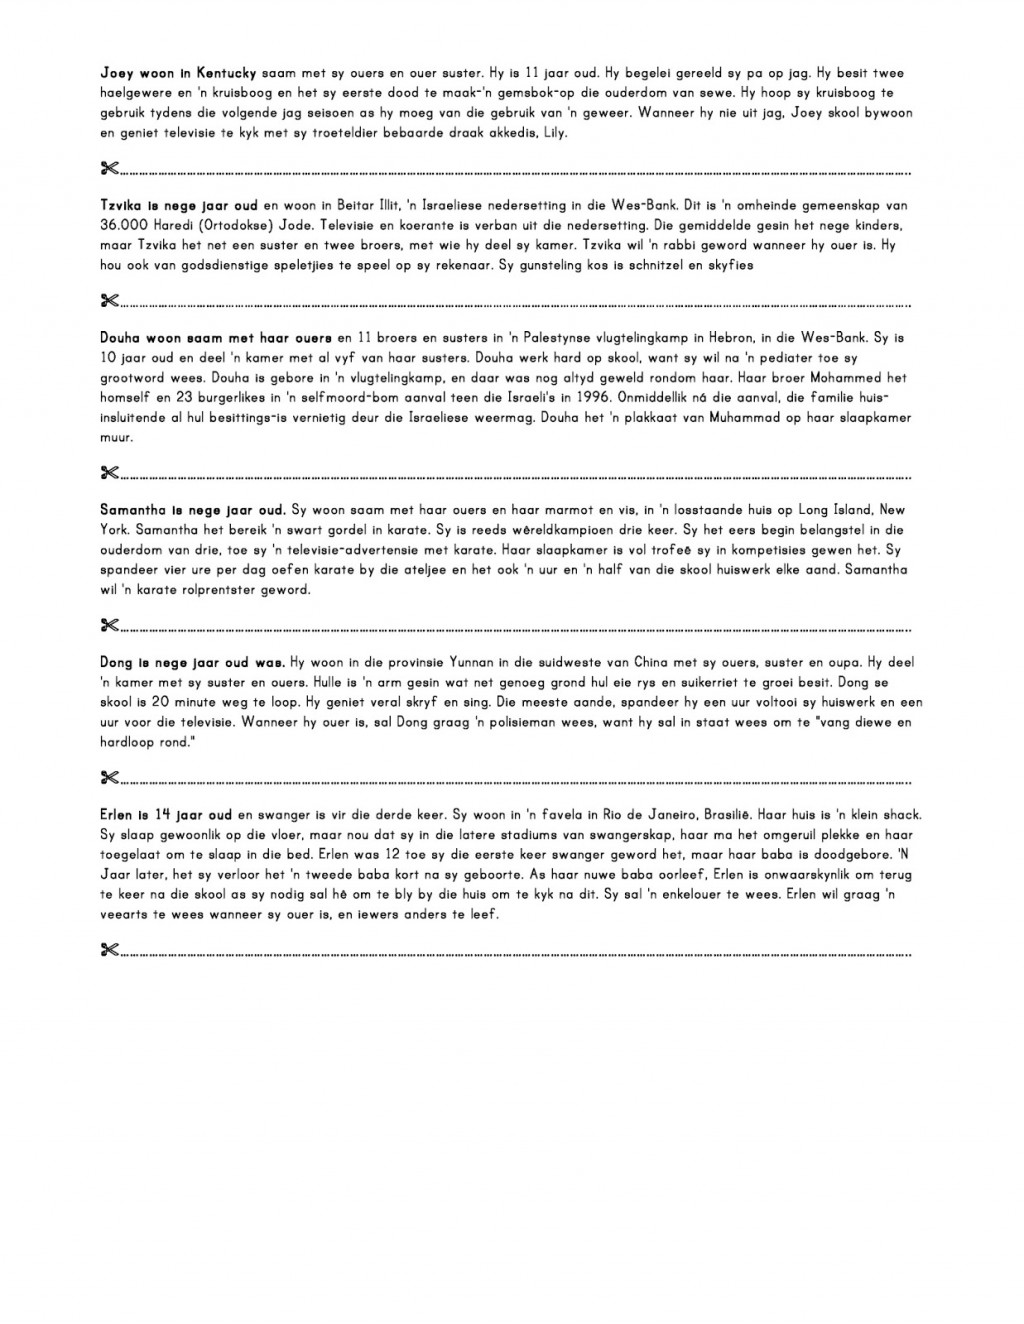 010 Fototext Page Jpg Human Trafficking Essay Rare Hook Questions Large